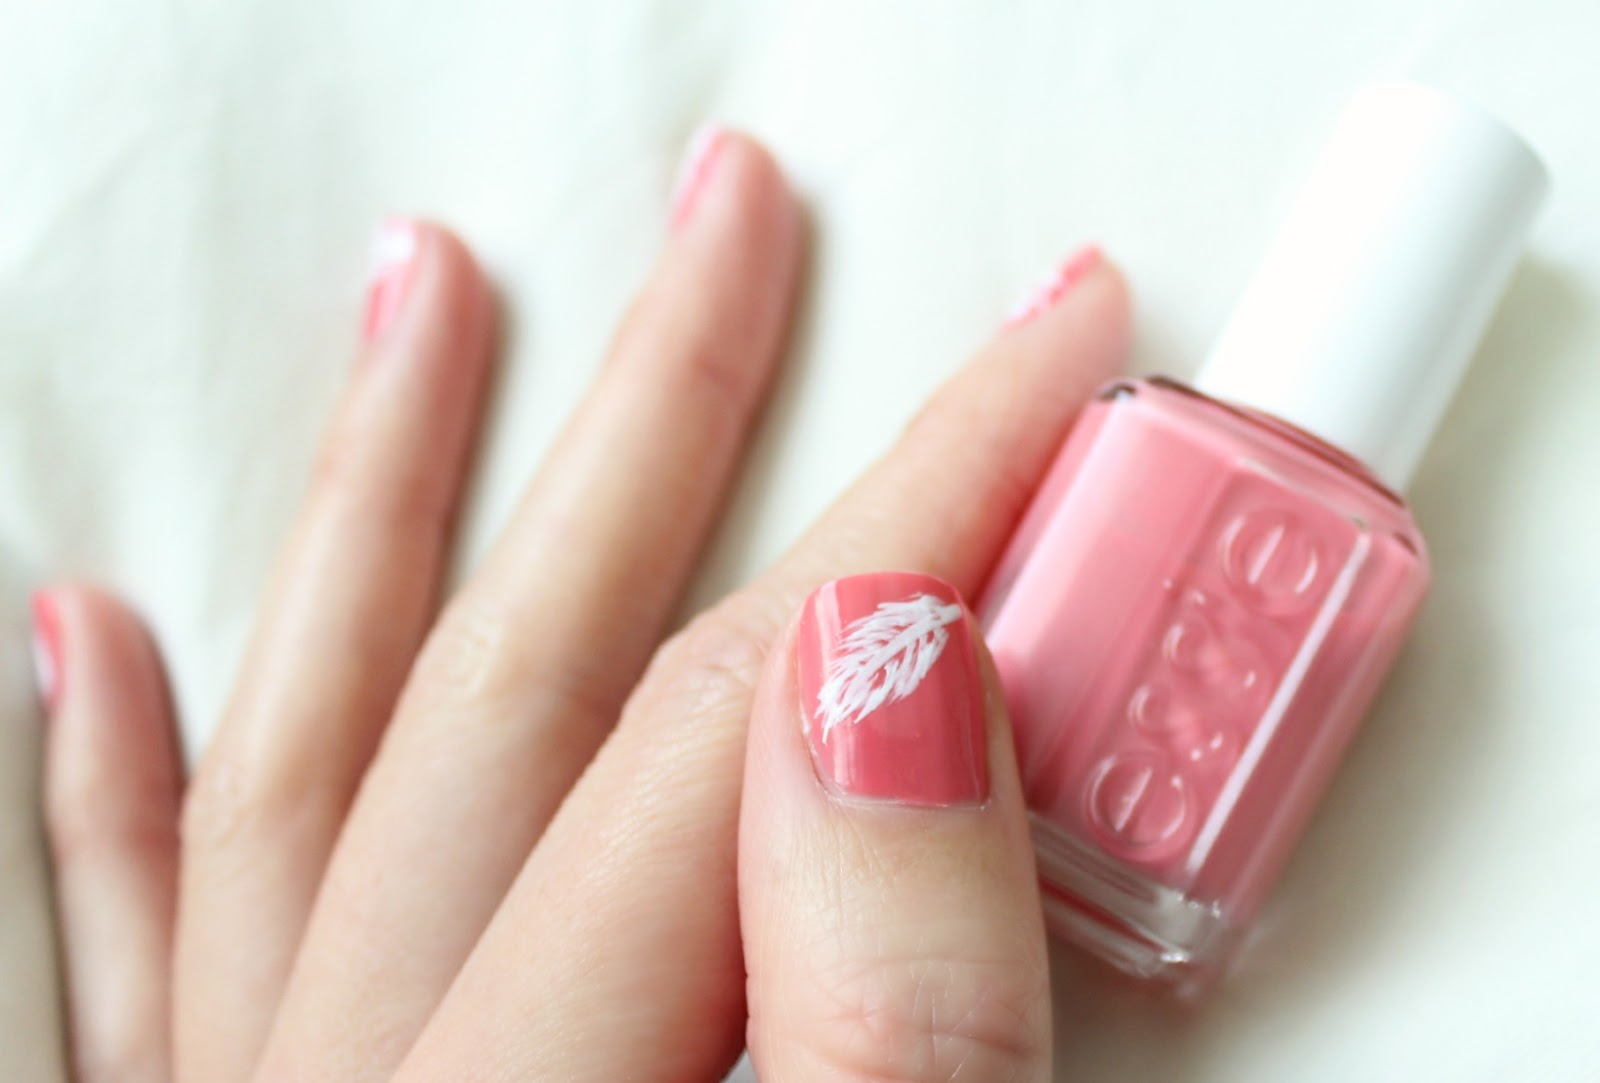 Fanciful Chaos: Essie My Place Or Yours + Pink and White Feather Nails